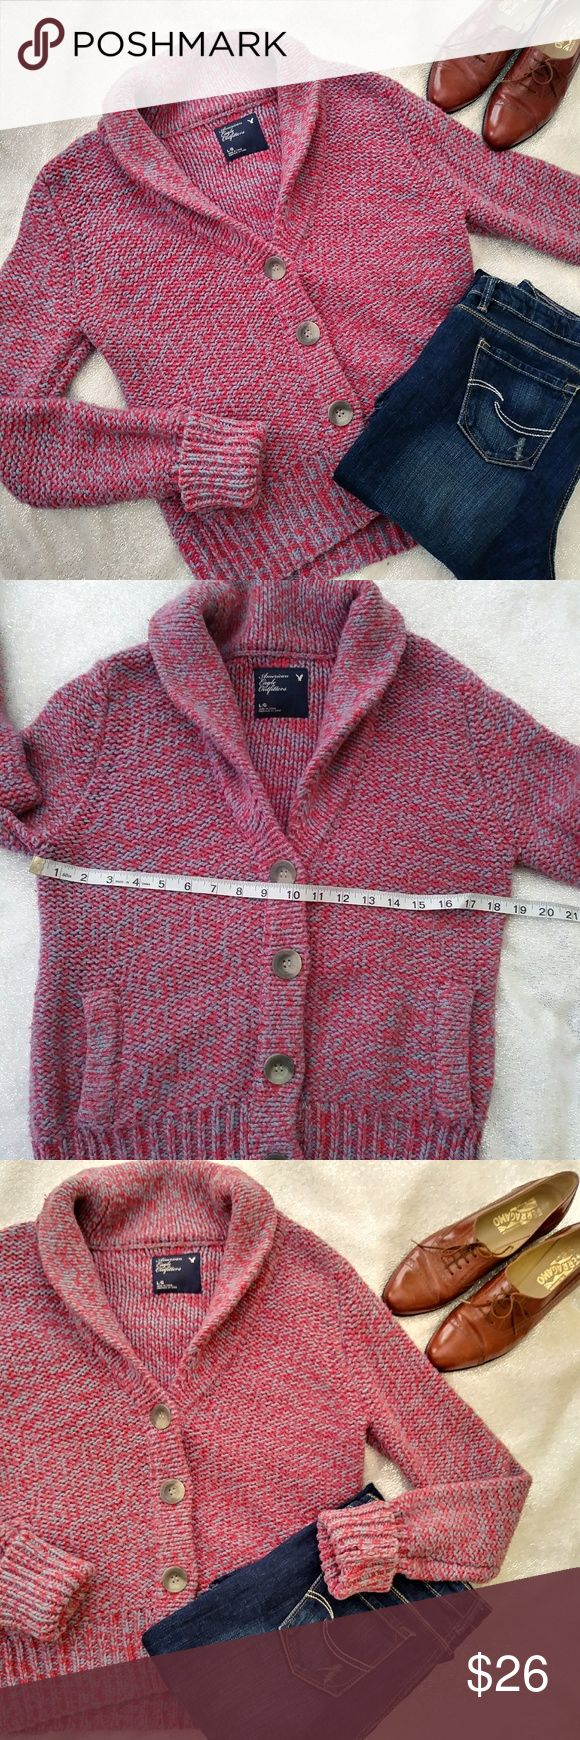 Chunky Comy Grandpa Sweater Chunky Comy Grandpa Sweater Pink and Lavender 4 Over Sized Buttons 2 Front Pockets See Pics for Measurements American Eagle Outfitters Sweaters Sign up with code TAINAGEEK to get $5 off your first order.